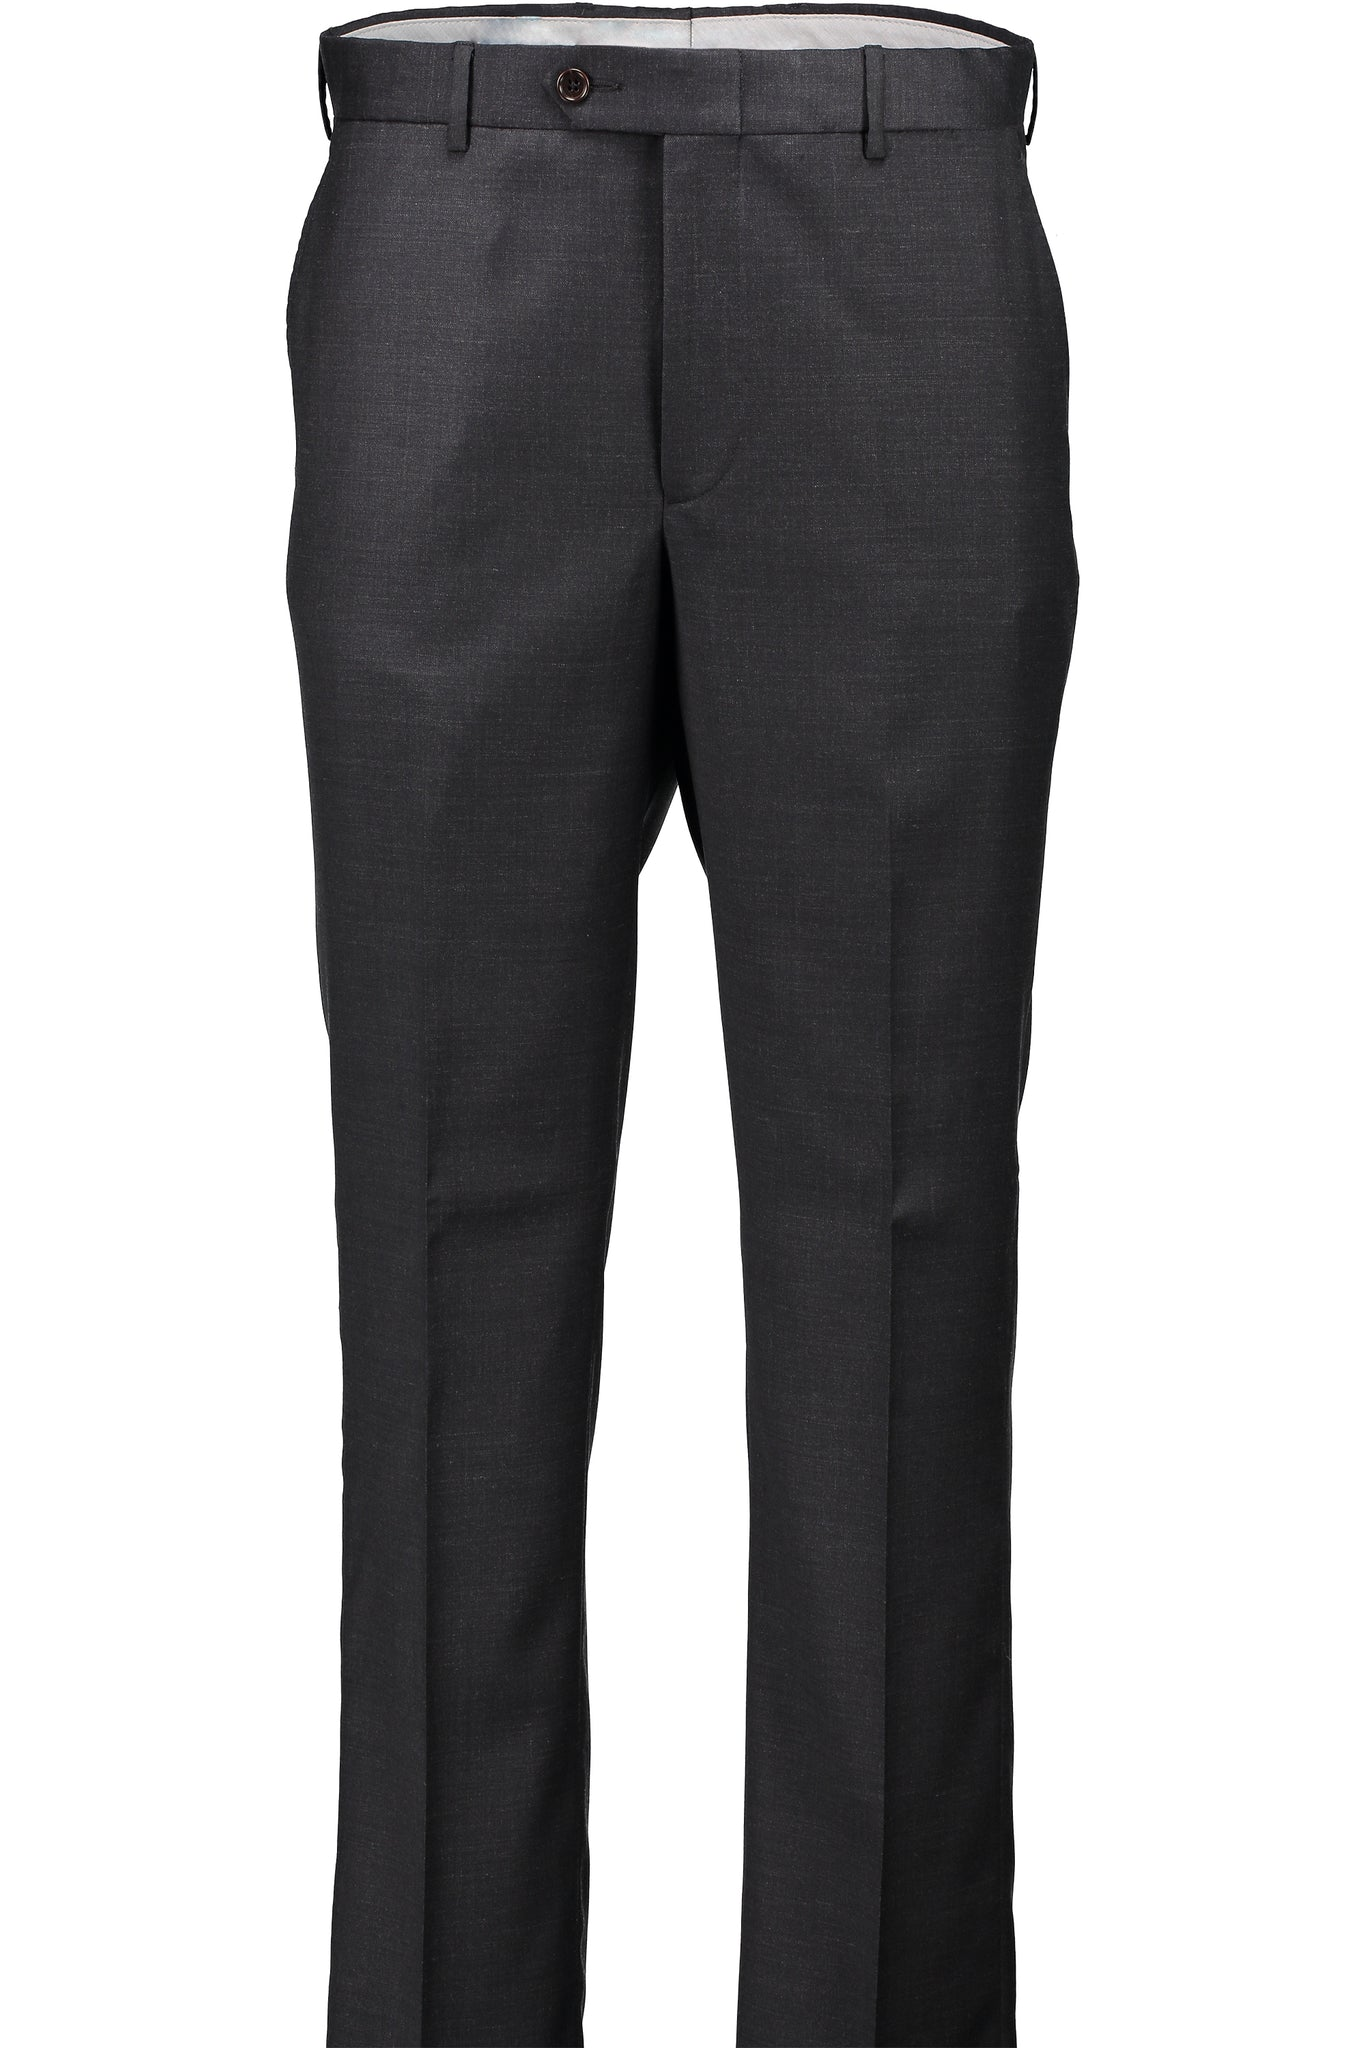 Classic Fit Charcoal Wool Traveler Suit Separate Flat Front Pant